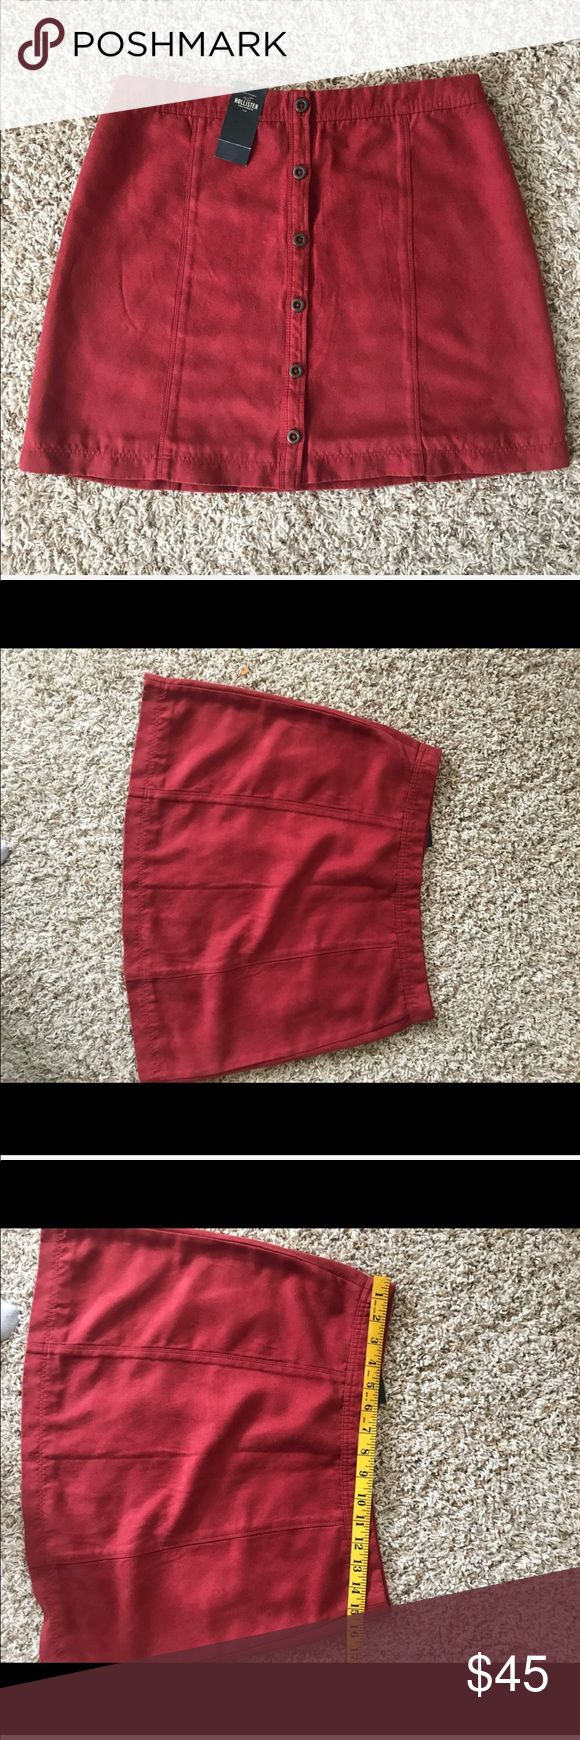 NWT Hollister Skirt Red Button of the front NWT Hollister Skirt. Size 9. Soft suede type feel material. Reddish burgundy color. Buttons down the front. In new condition. Comes from smoke free and clean home. Remember to bundle when you save. Thanks Hollister Skirts Mini